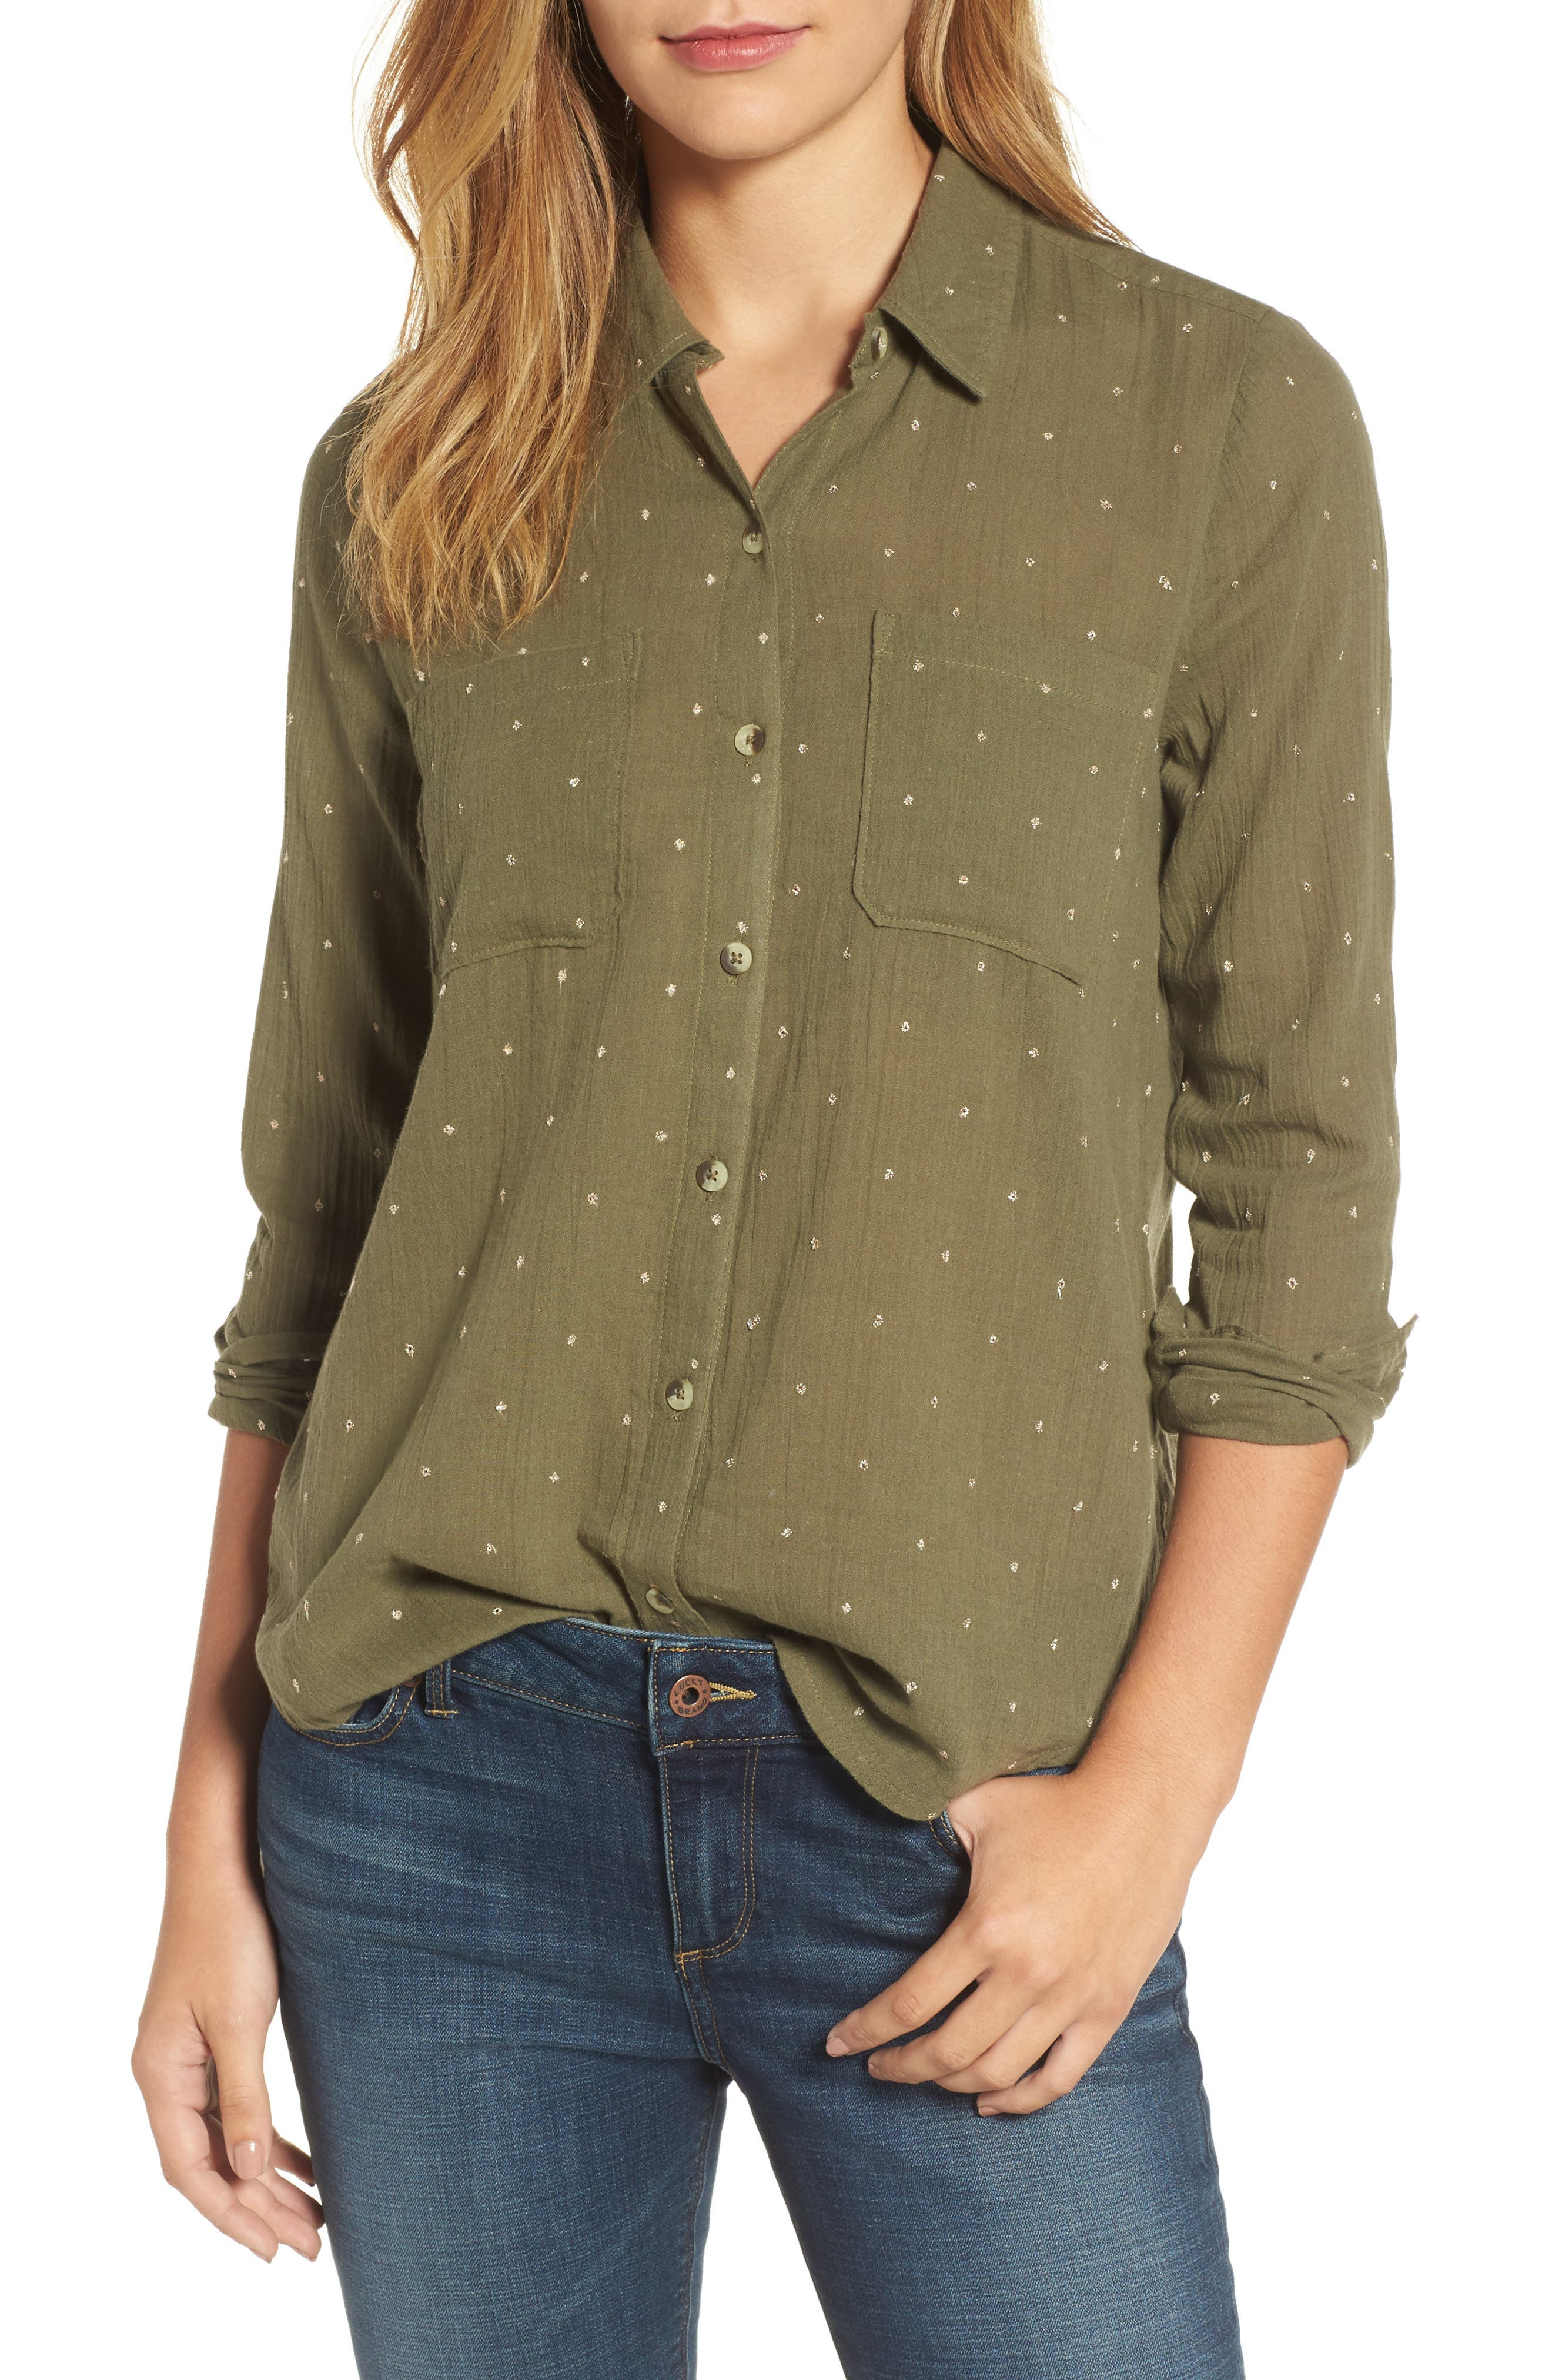 Lucky You Shirt,                         Main,                         color, Dark Olive